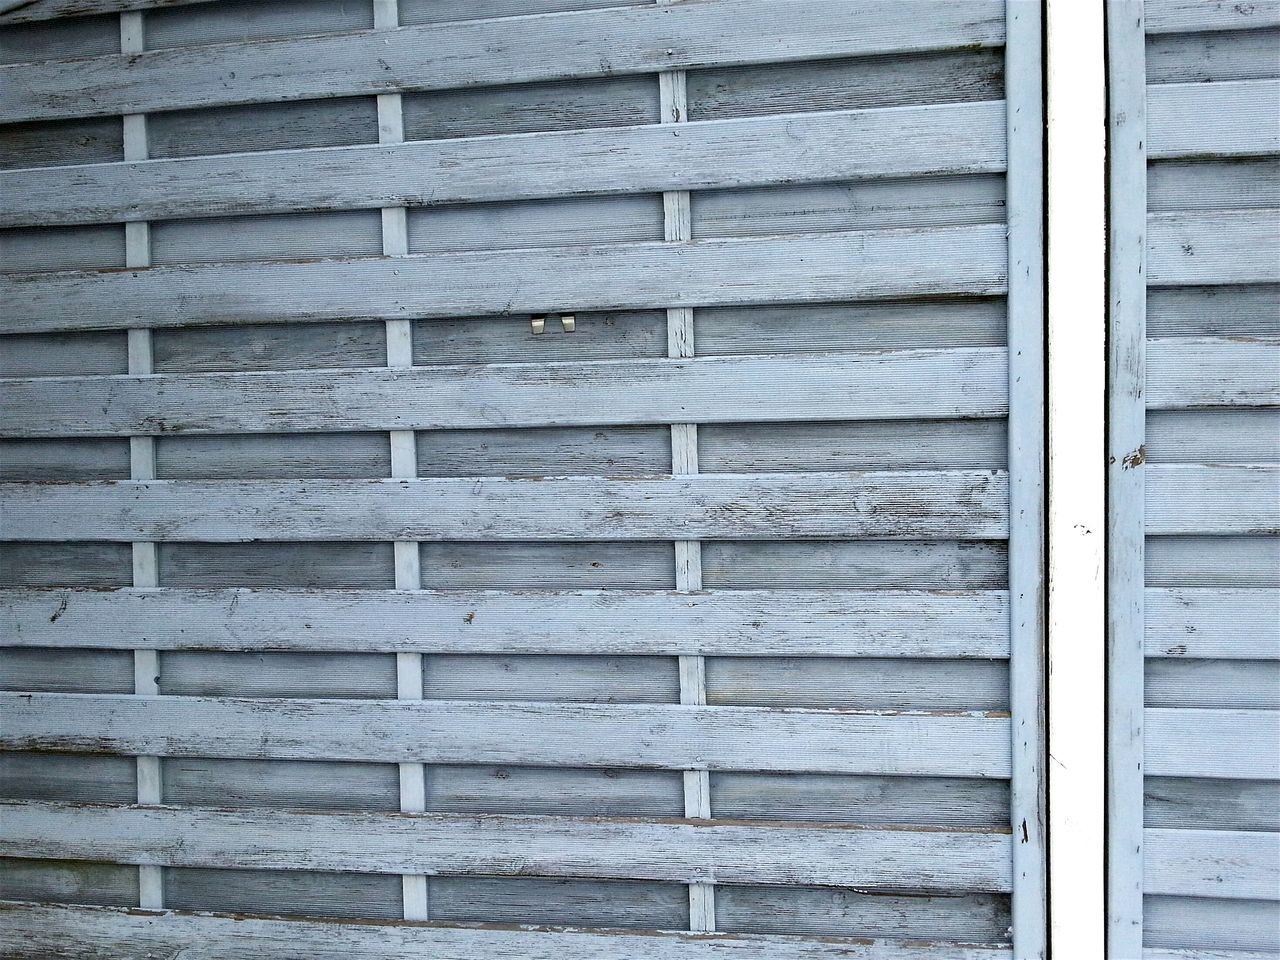 backgrounds, full frame, wood - material, no people, day, pattern, outdoors, close-up, architecture